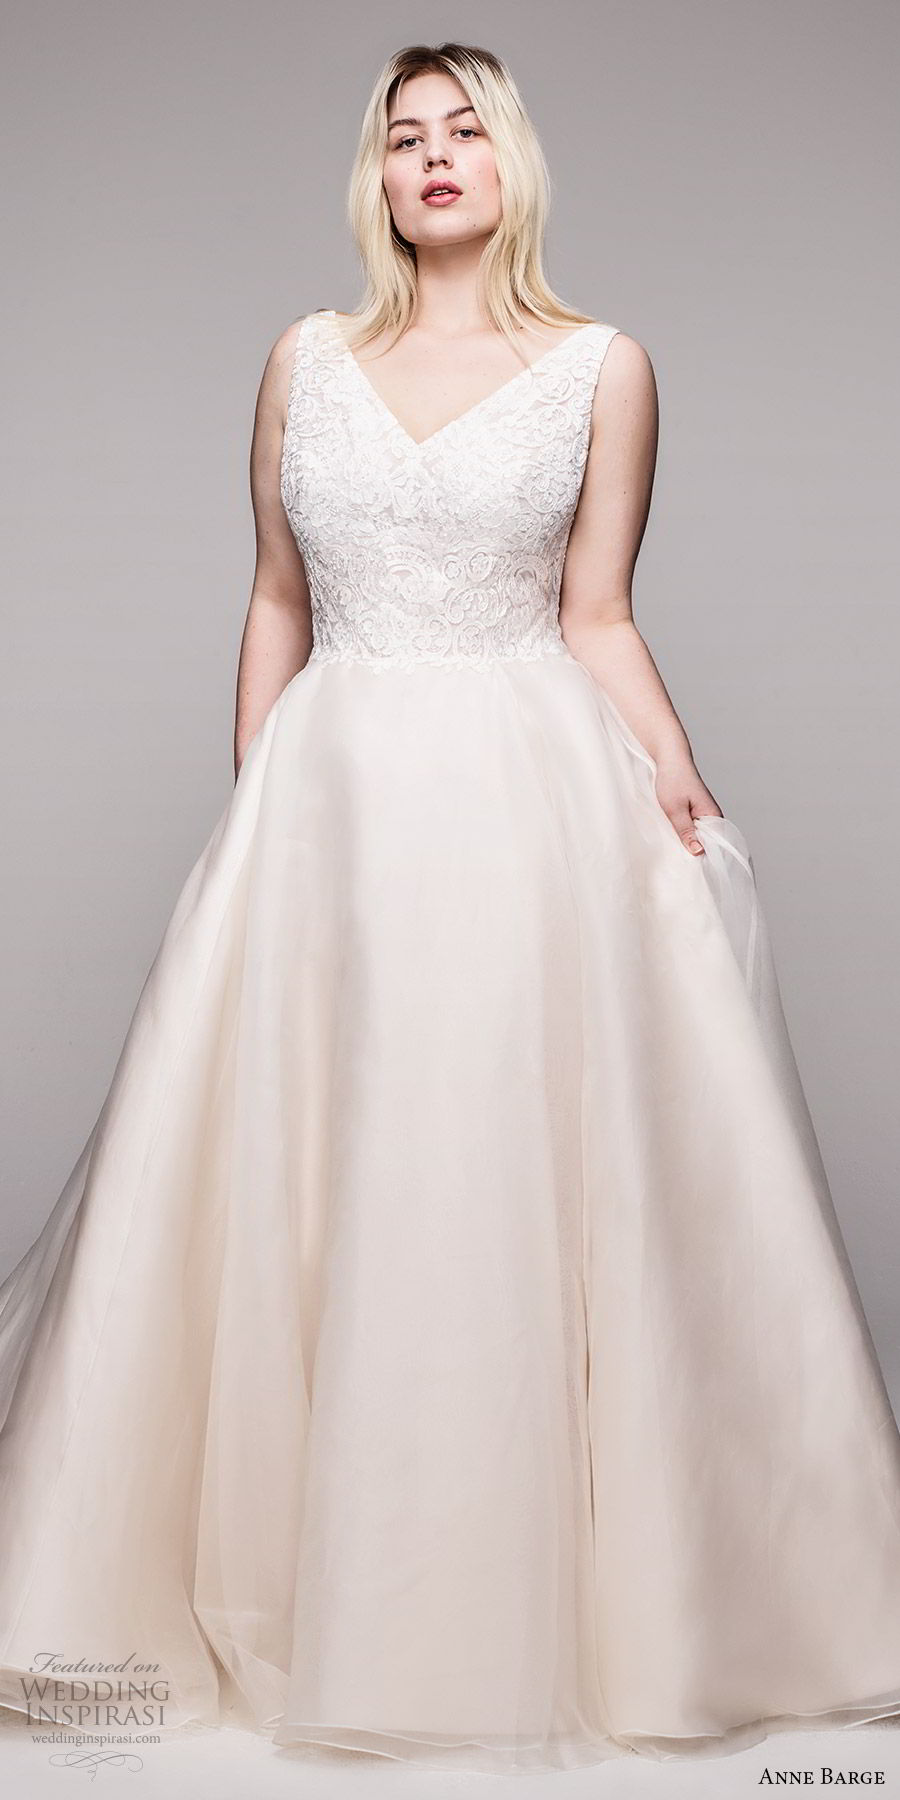 anne barge 2020 bridal plus size sleeveless thick straps v neckline embellished bodice a line ball gown wedding dress (12) elegant romantic blush champagne chapel train mv